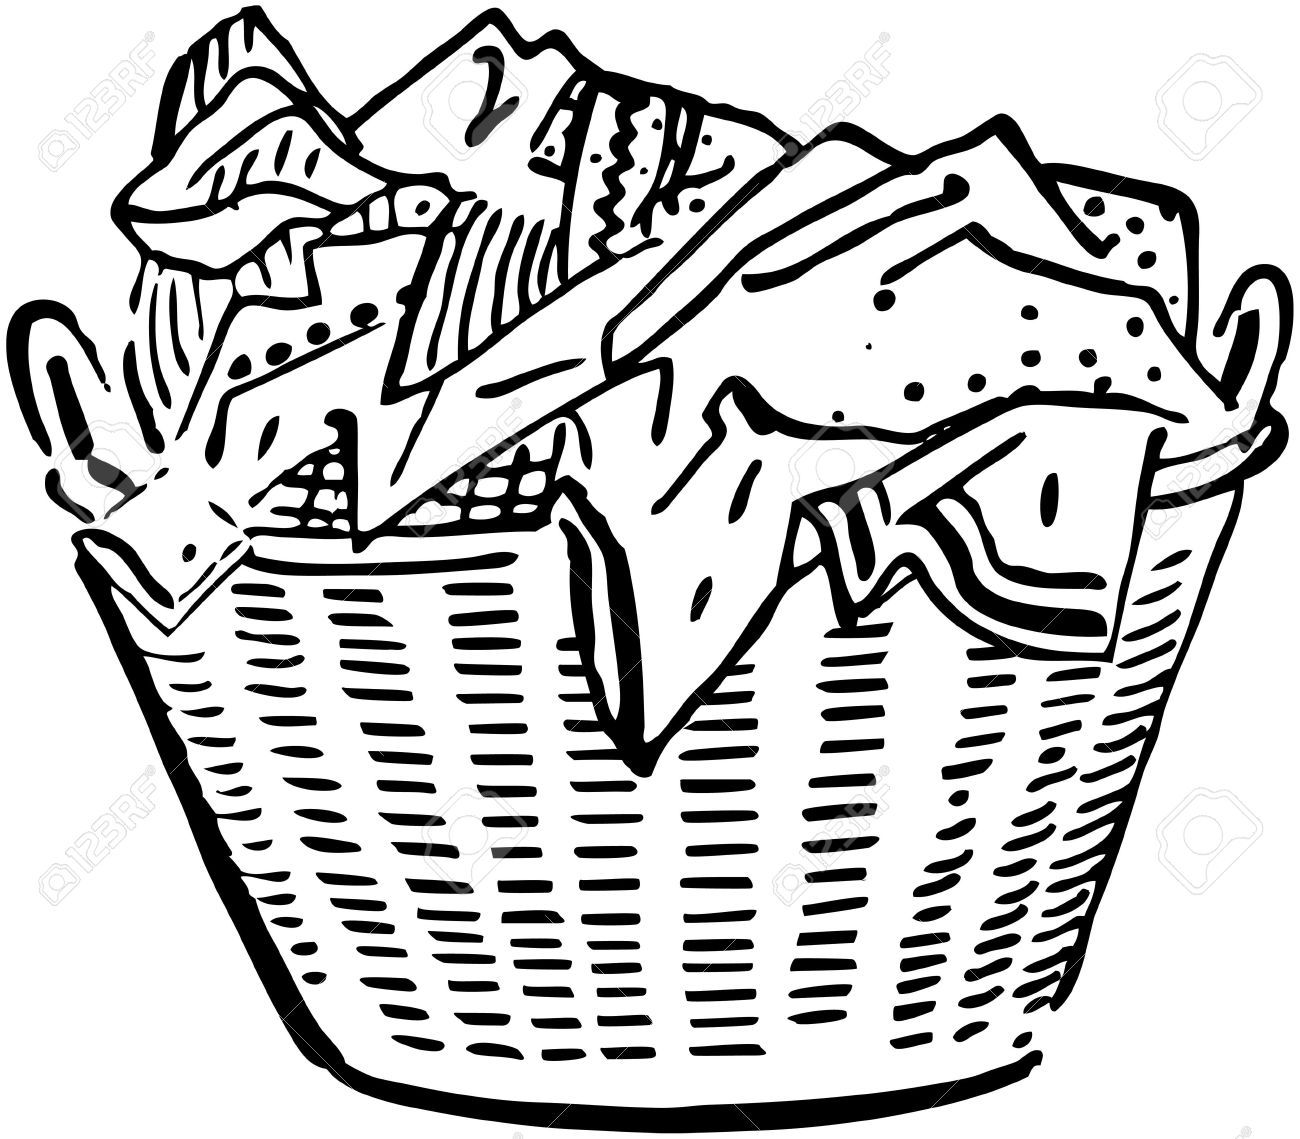 Laundry Basket Clipart : Laundry basket royalty free cliparts vectors and stock